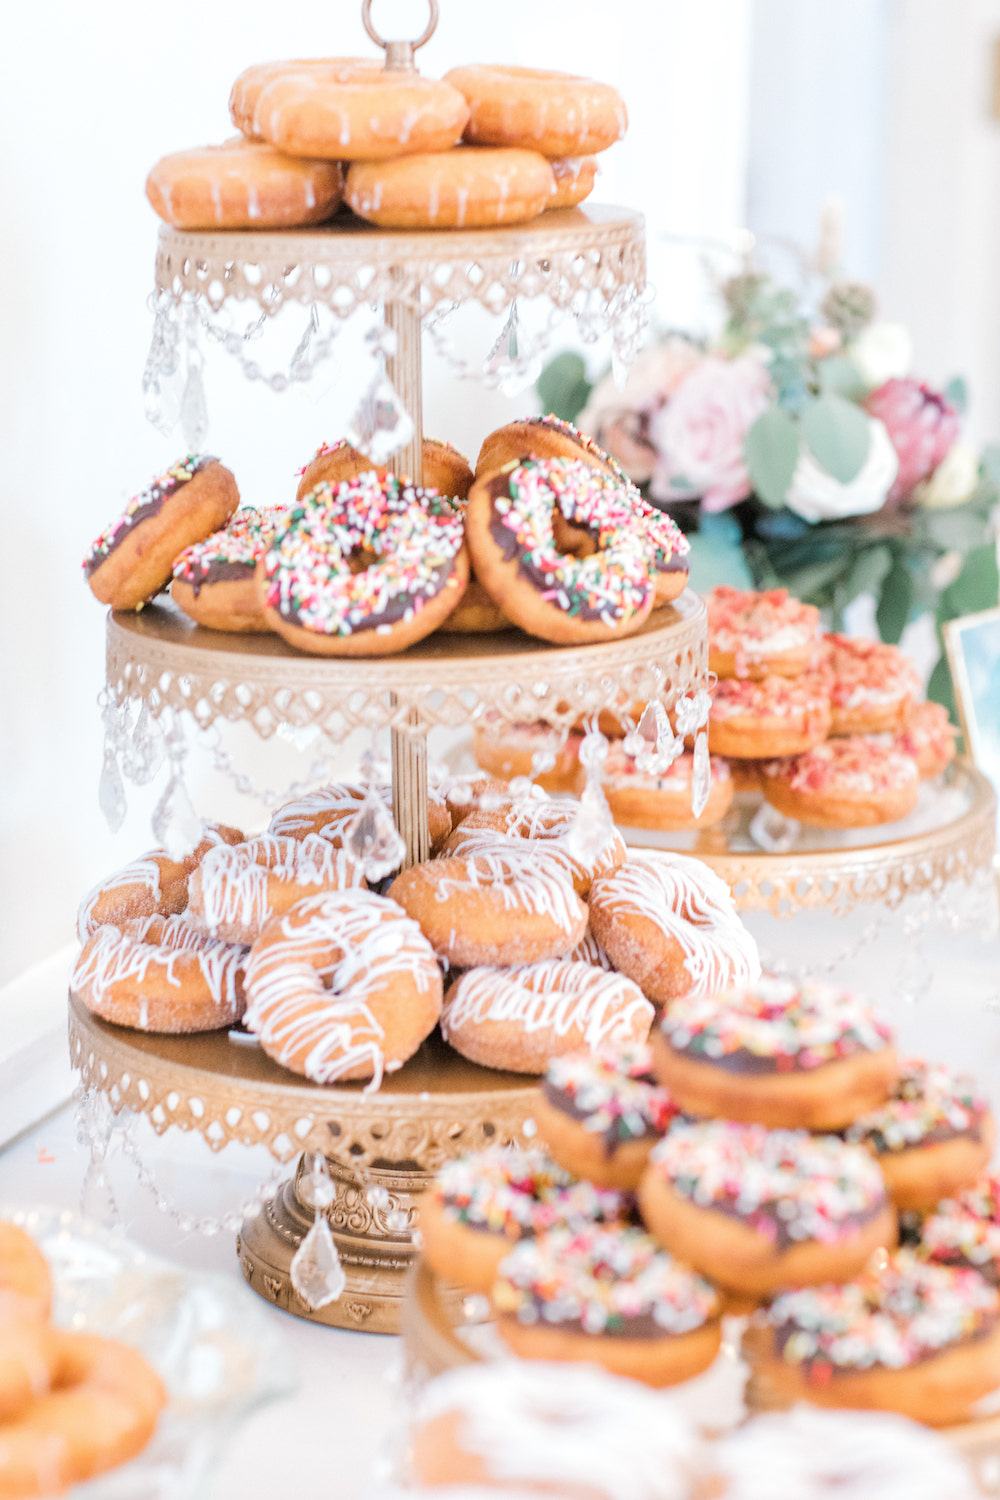 Multi-tier display of donuts